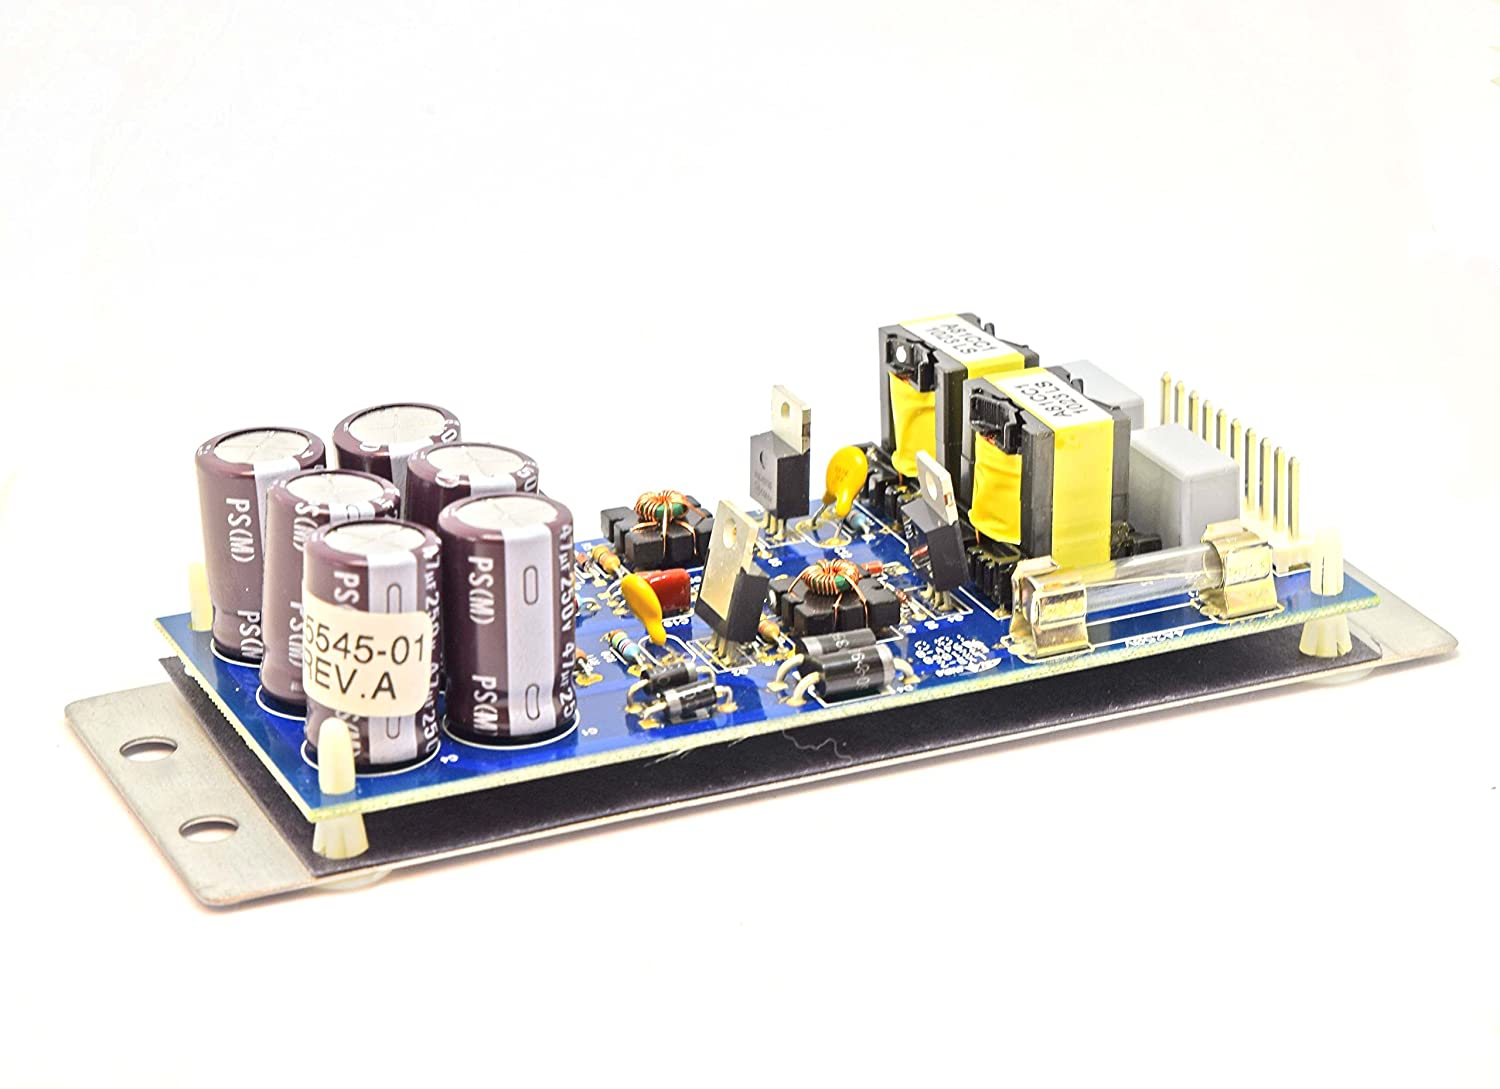 10-Pin Electronic Ballast 110V for SunQuest Pro Tanning Beds